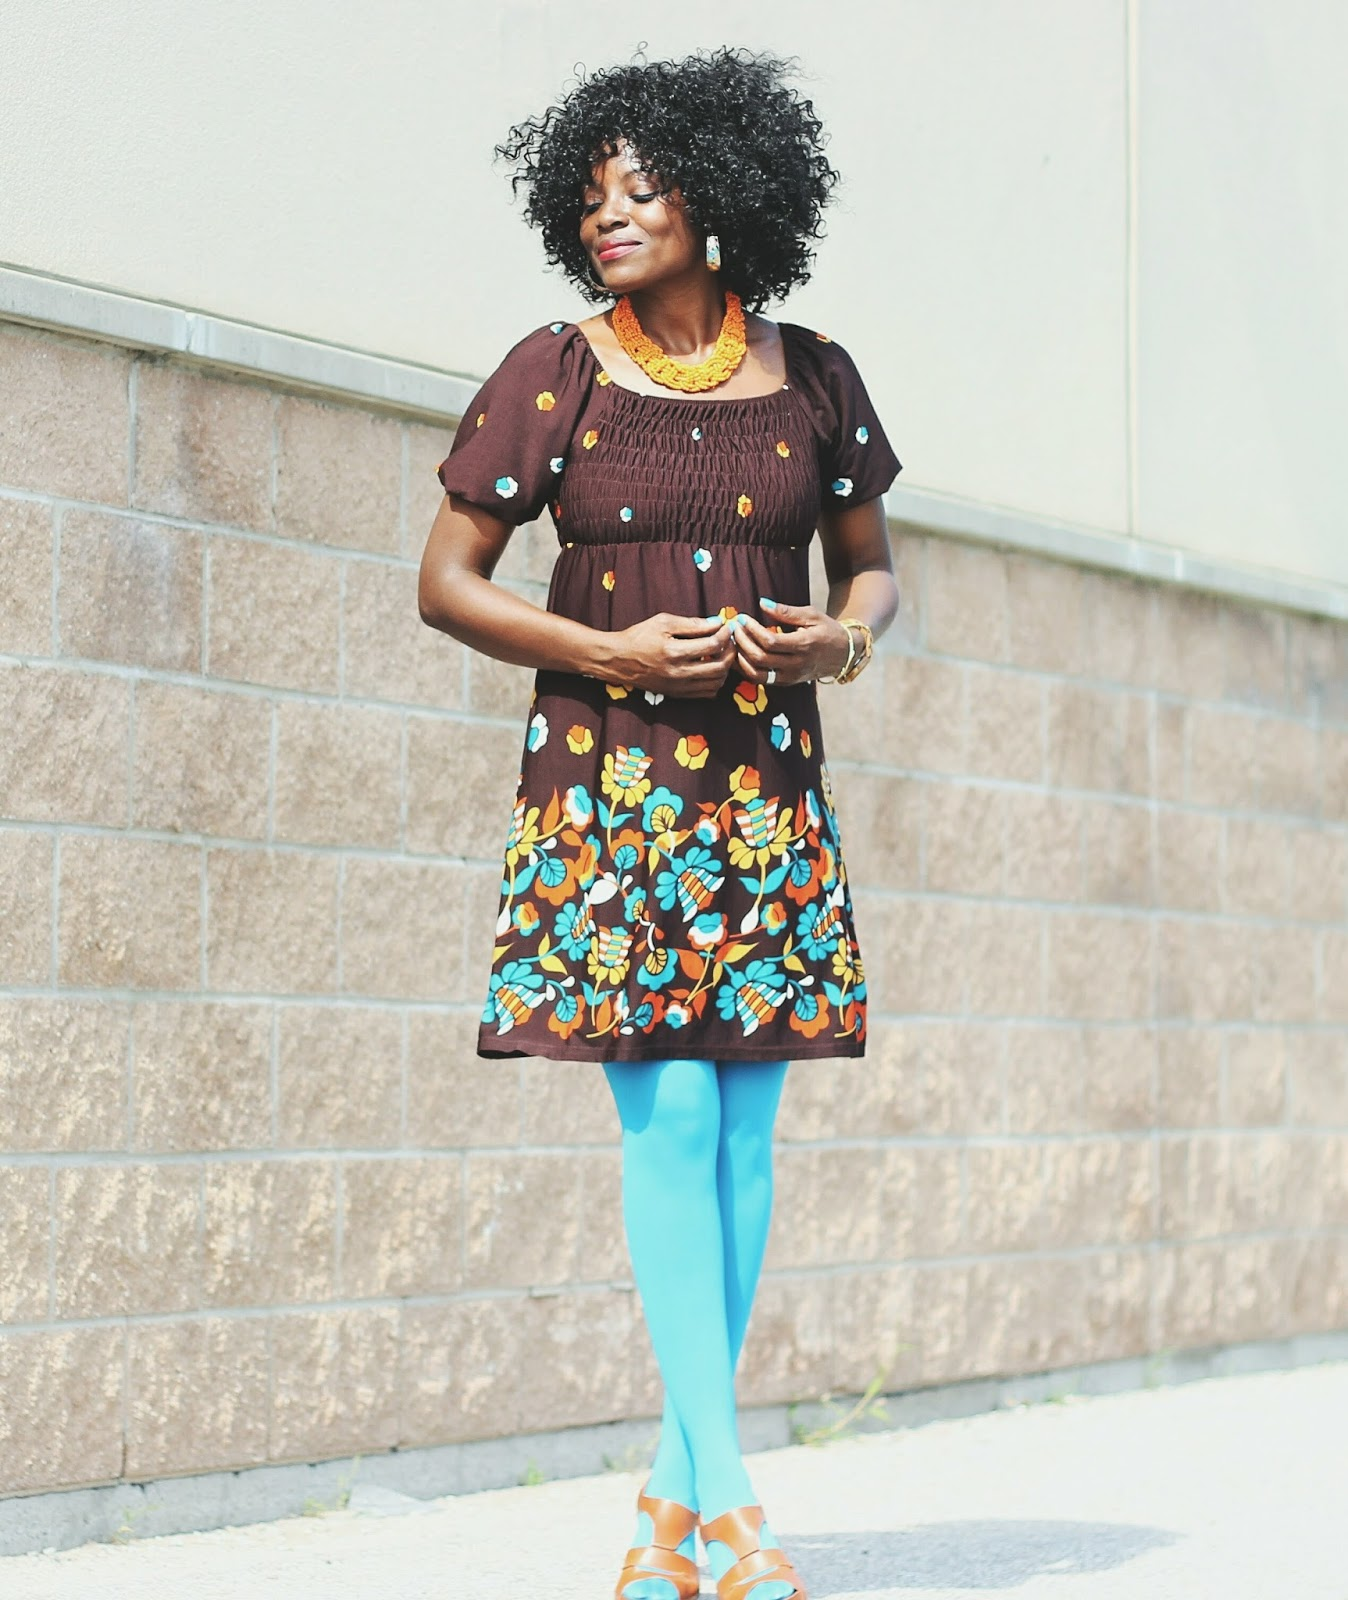 Boho and Retro style outfit mix with a gypsy dress